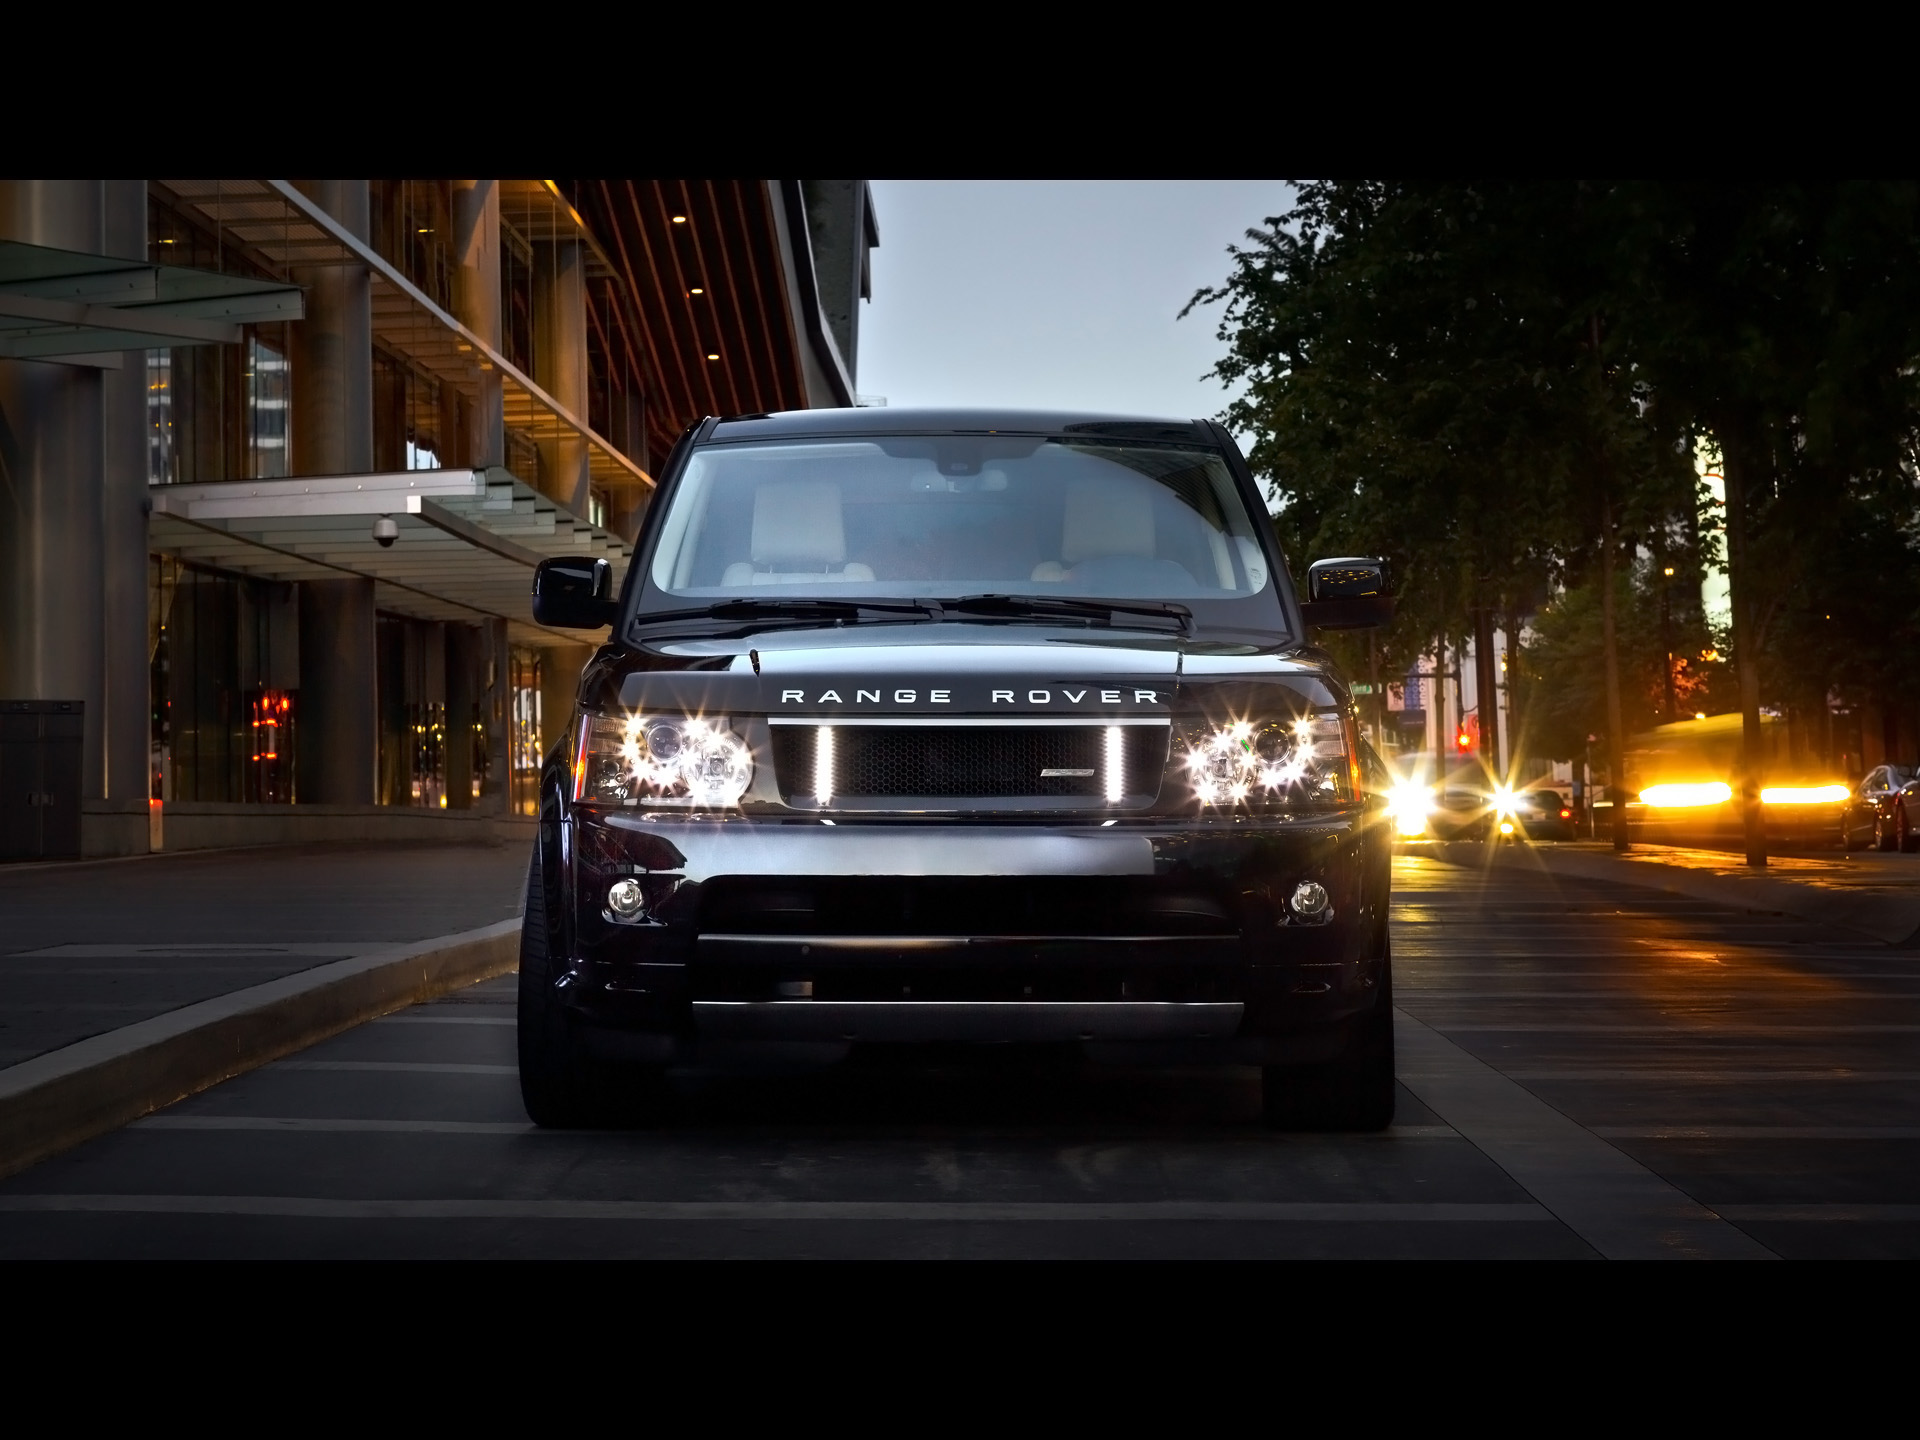 1920x1440 - Range Rover Wallpapers 28